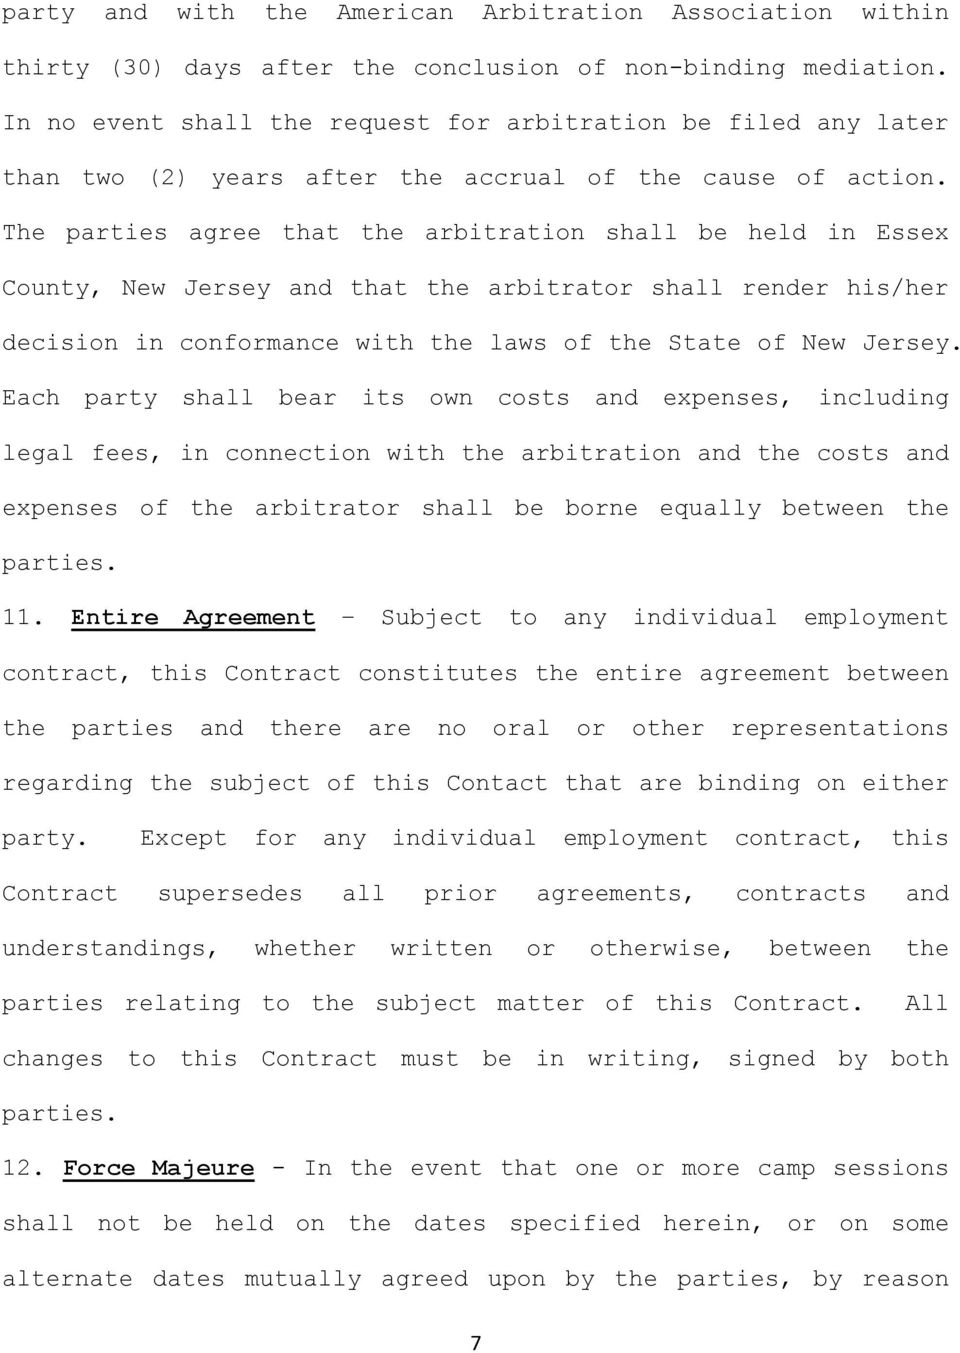 The parties agree that the arbitration shall be held in Essex County, New Jersey and that the arbitrator shall render his/her decision in conformance with the laws of the State of New Jersey.